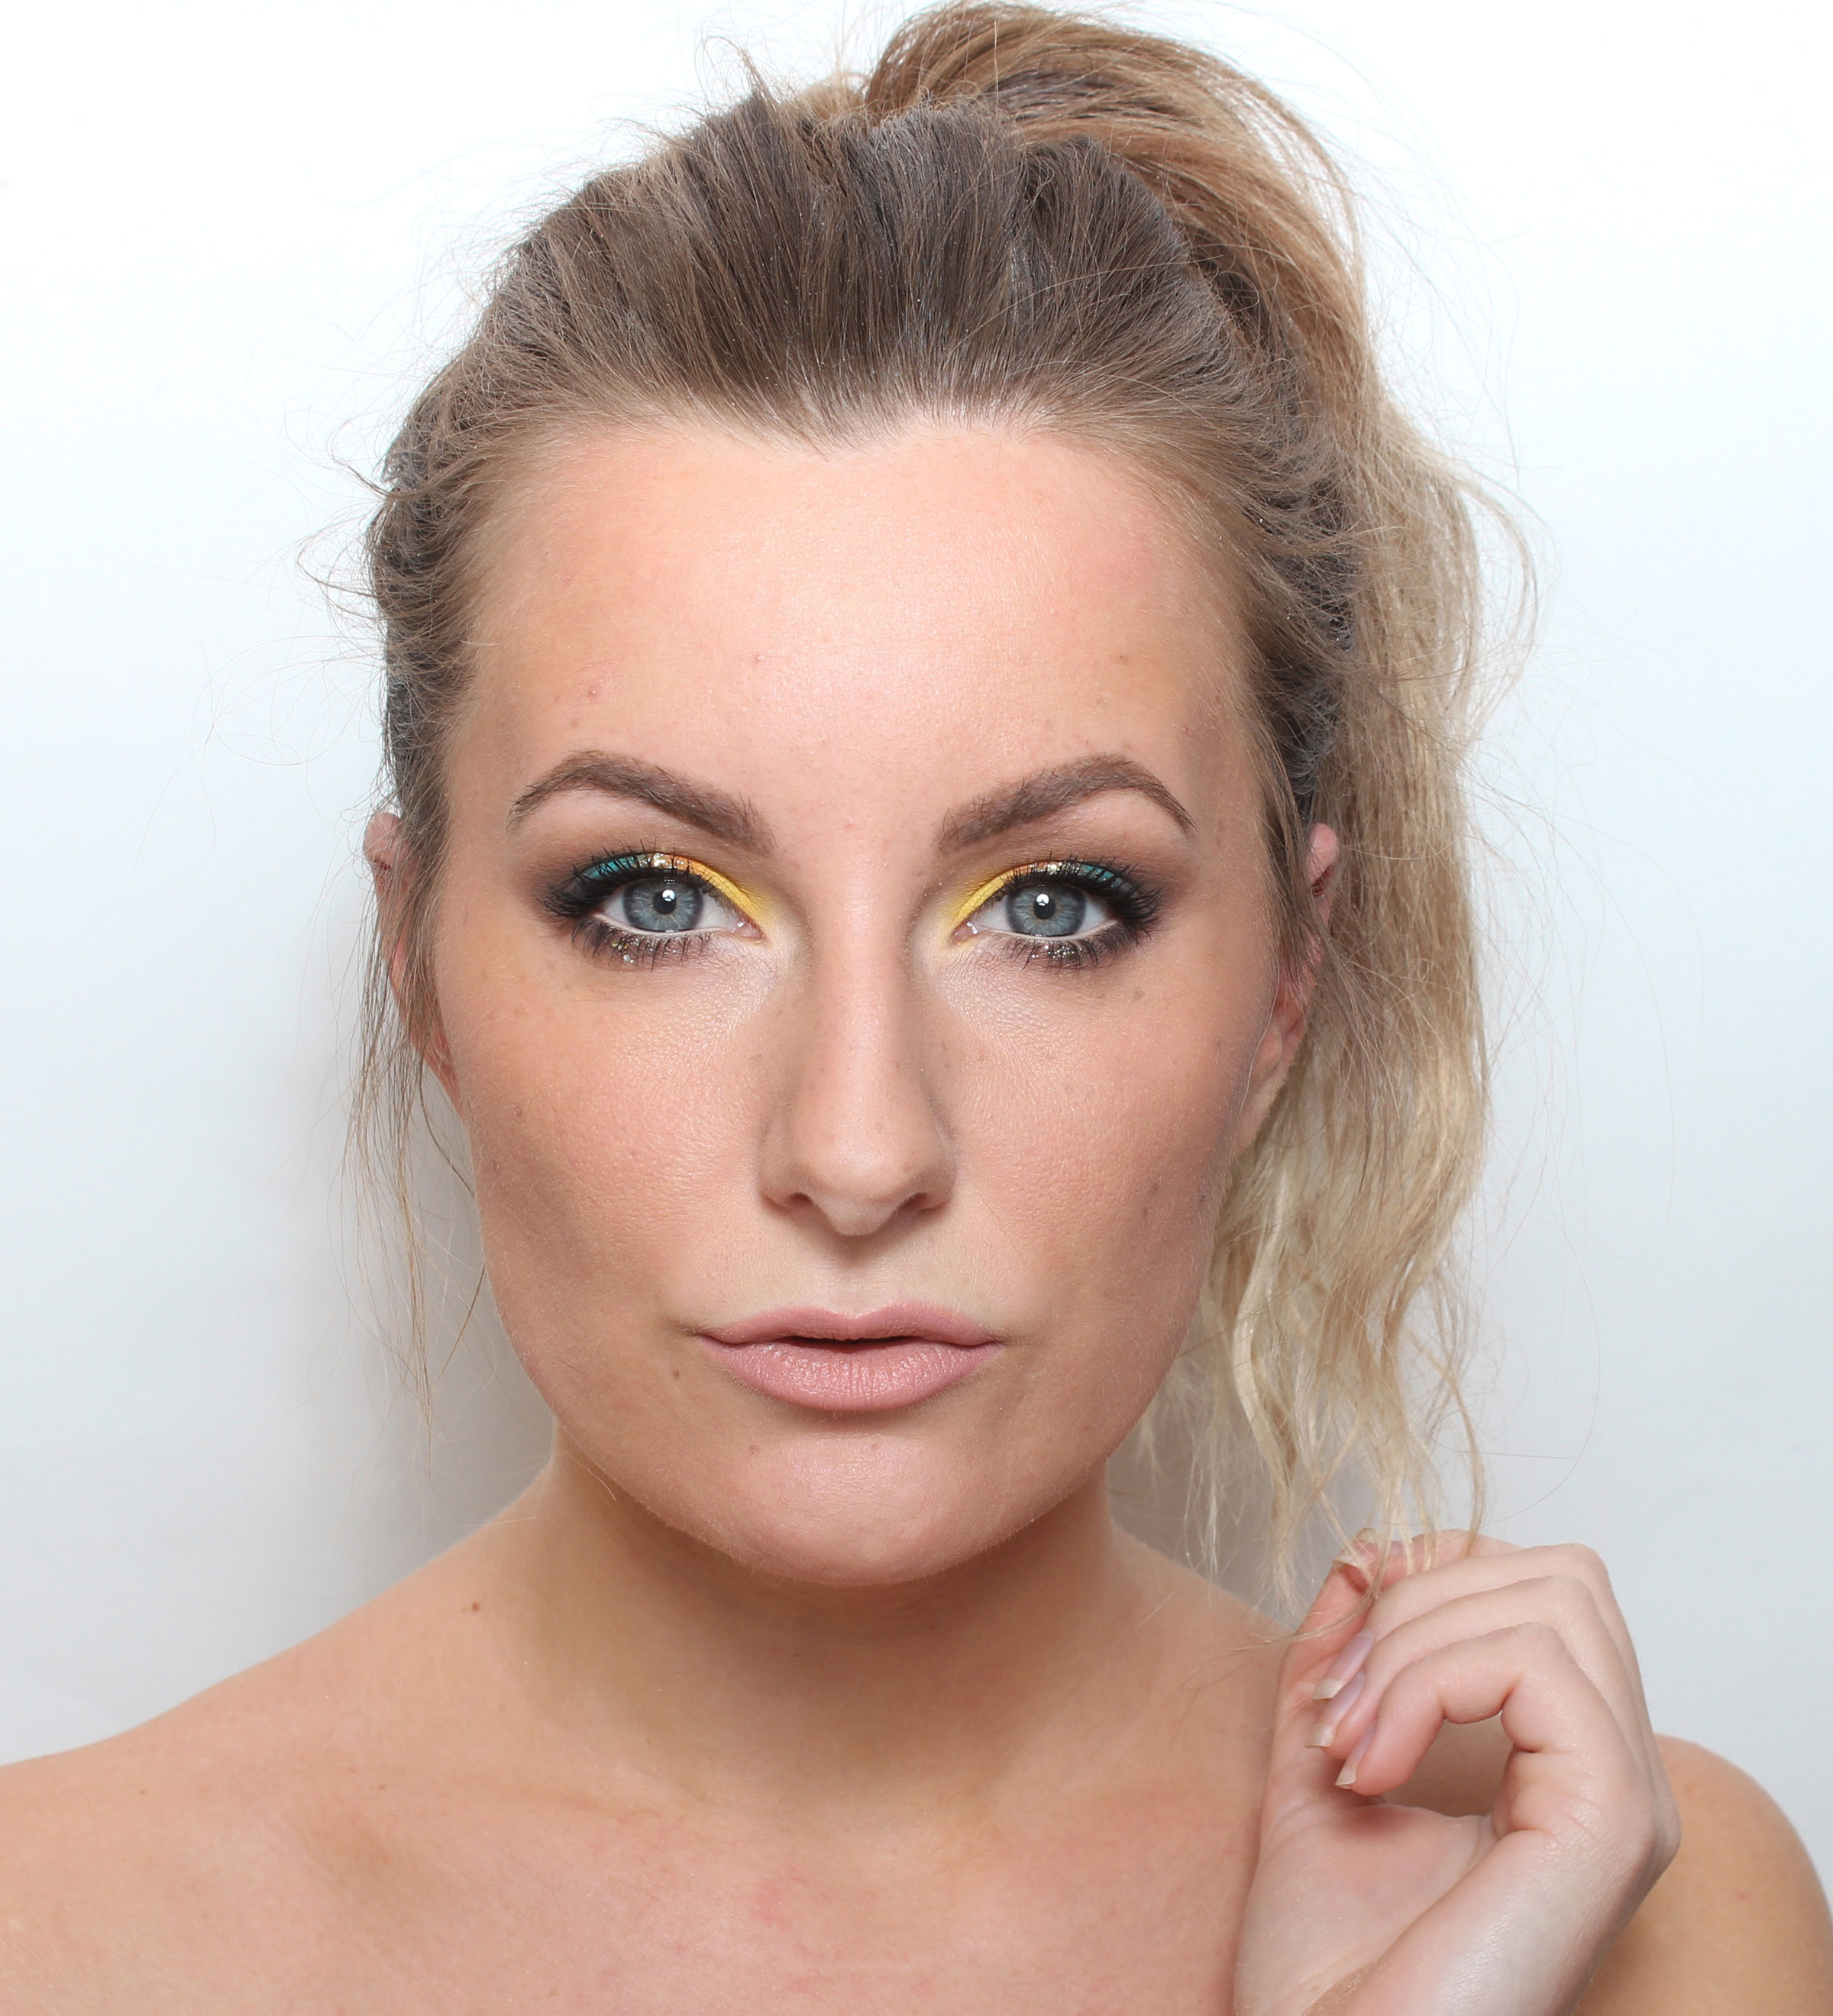 makeup with glitter and color eyes